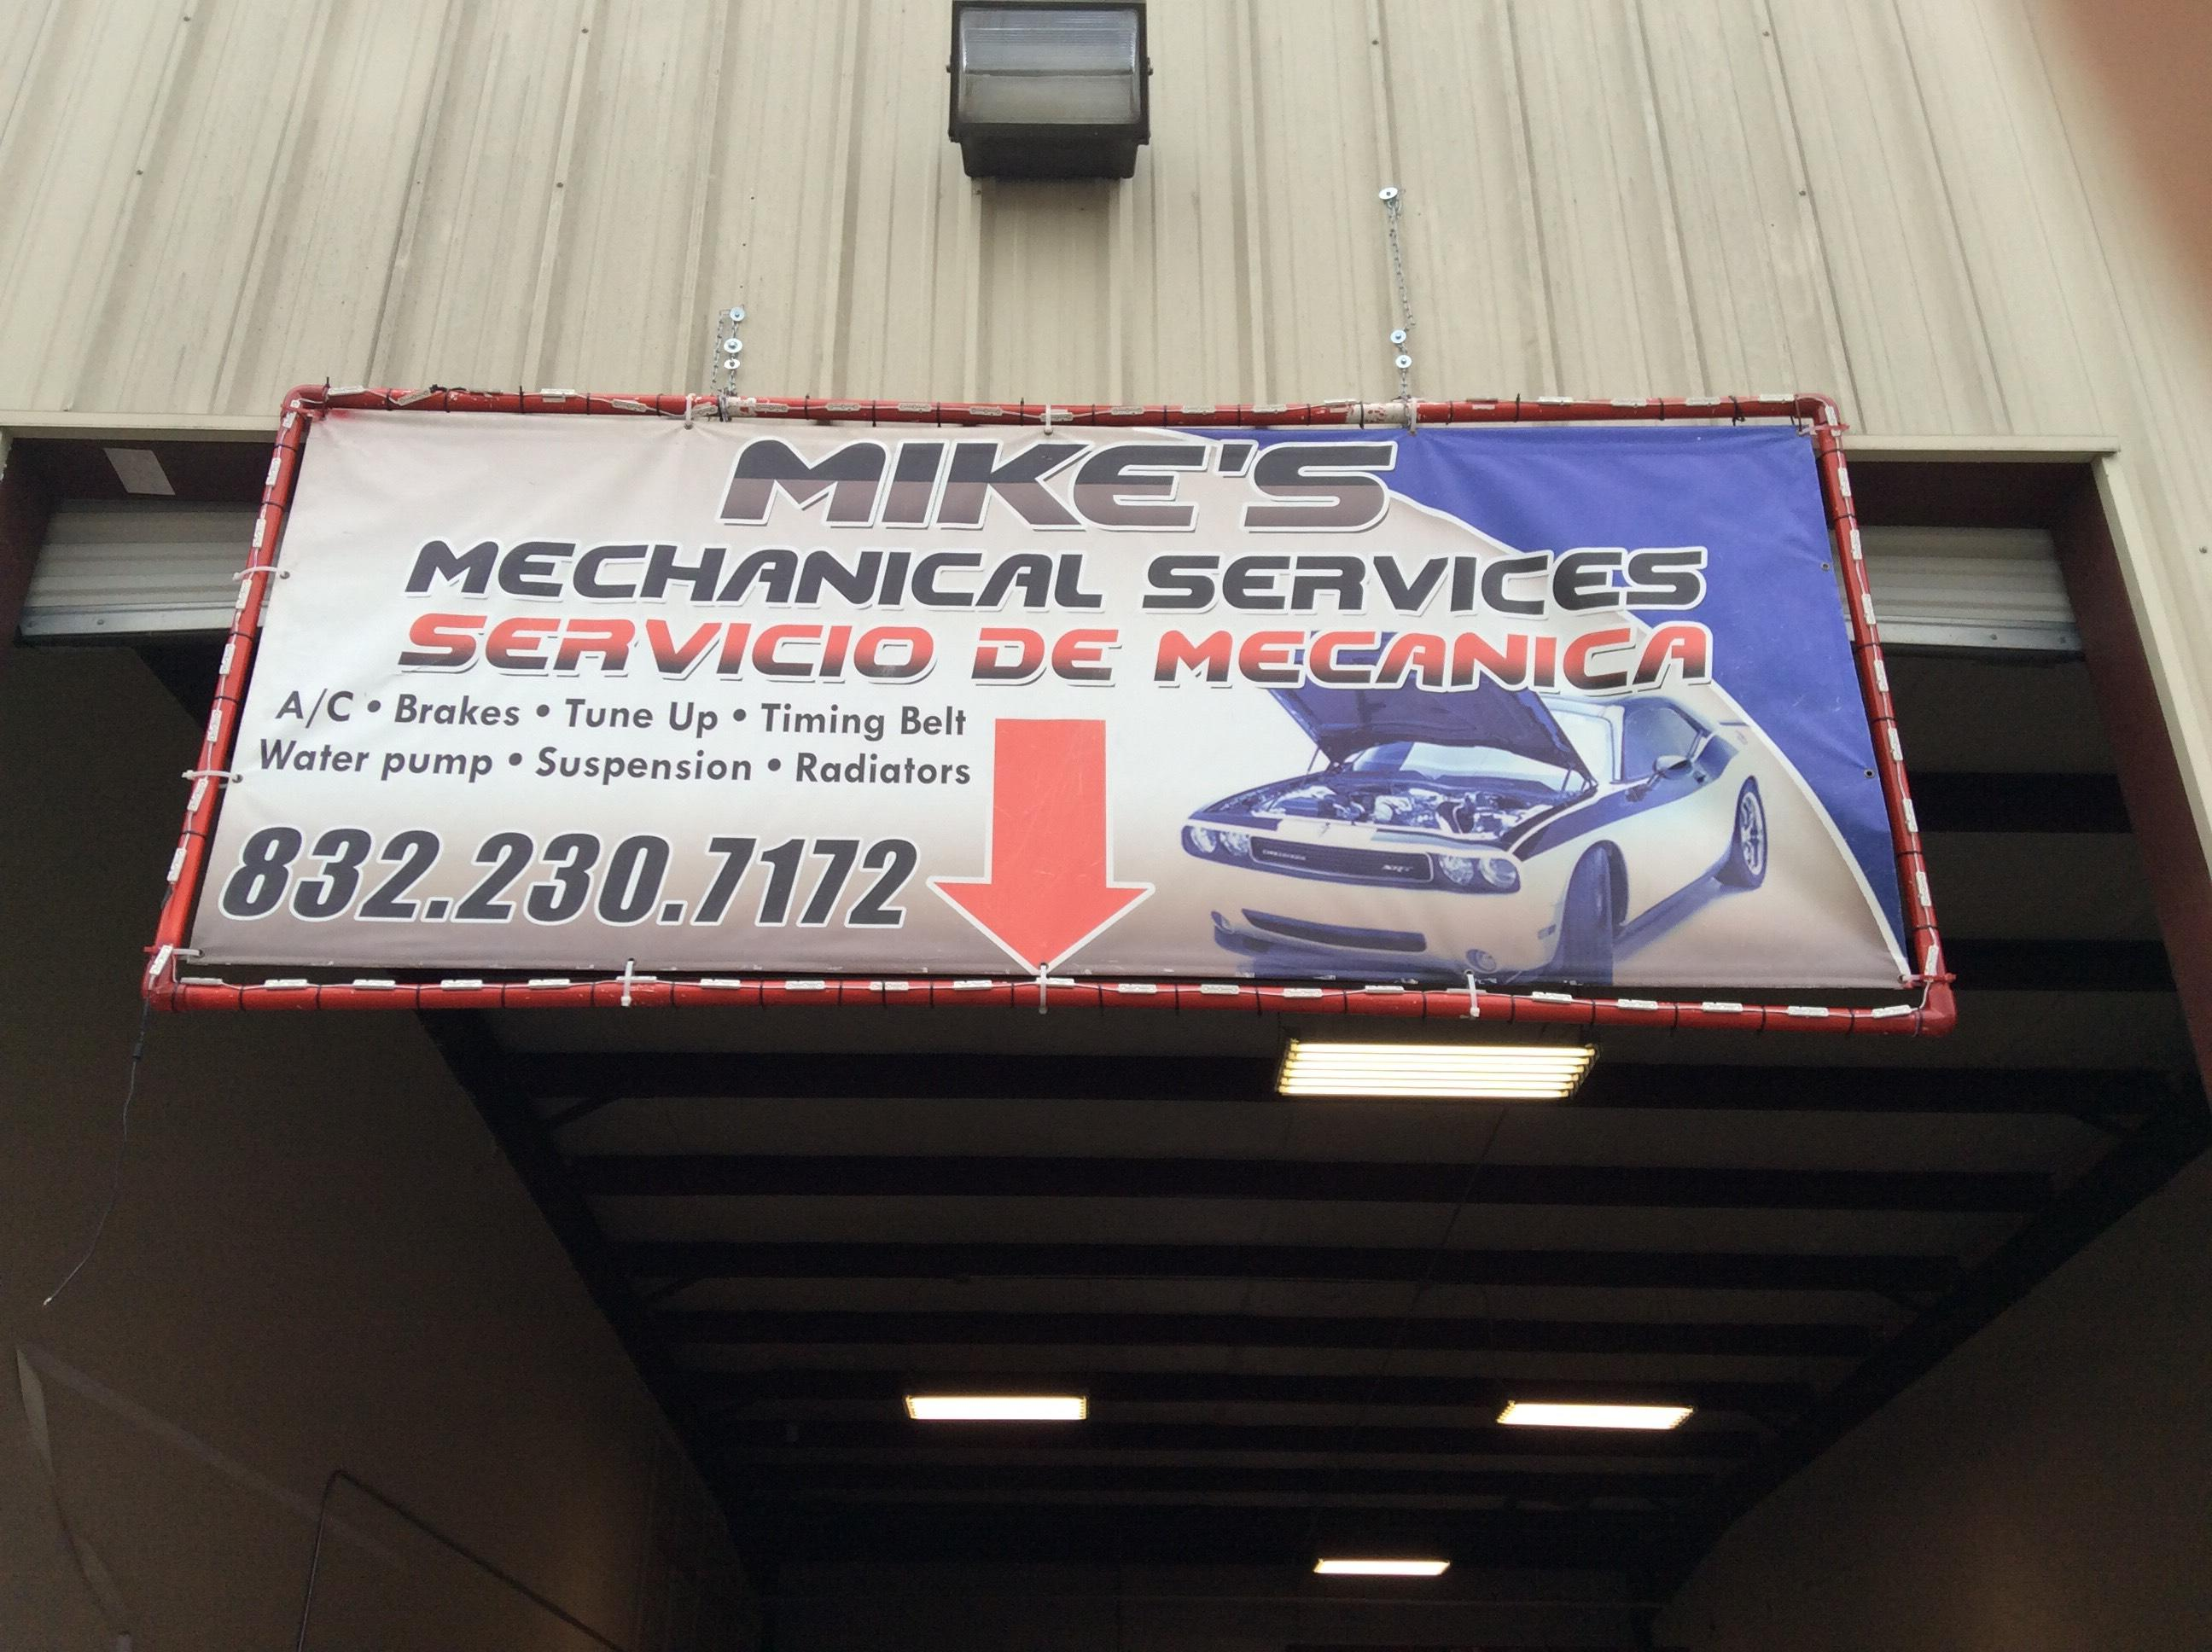 Mike's Mechanical Services image 2